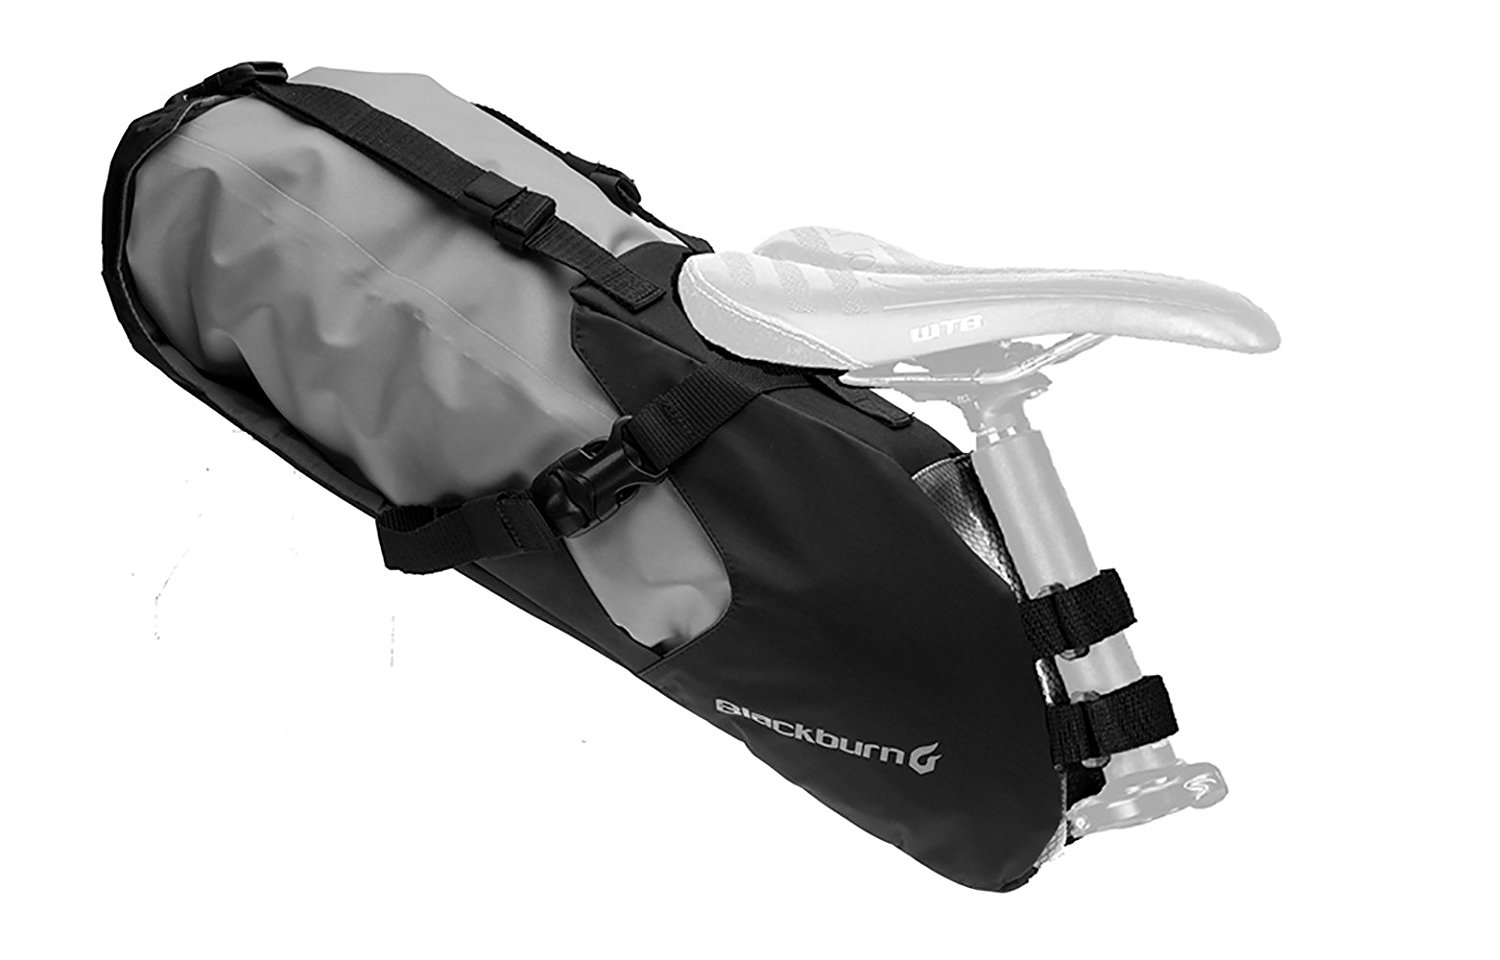 blackburn outpost seat pack with dry bag.jpg